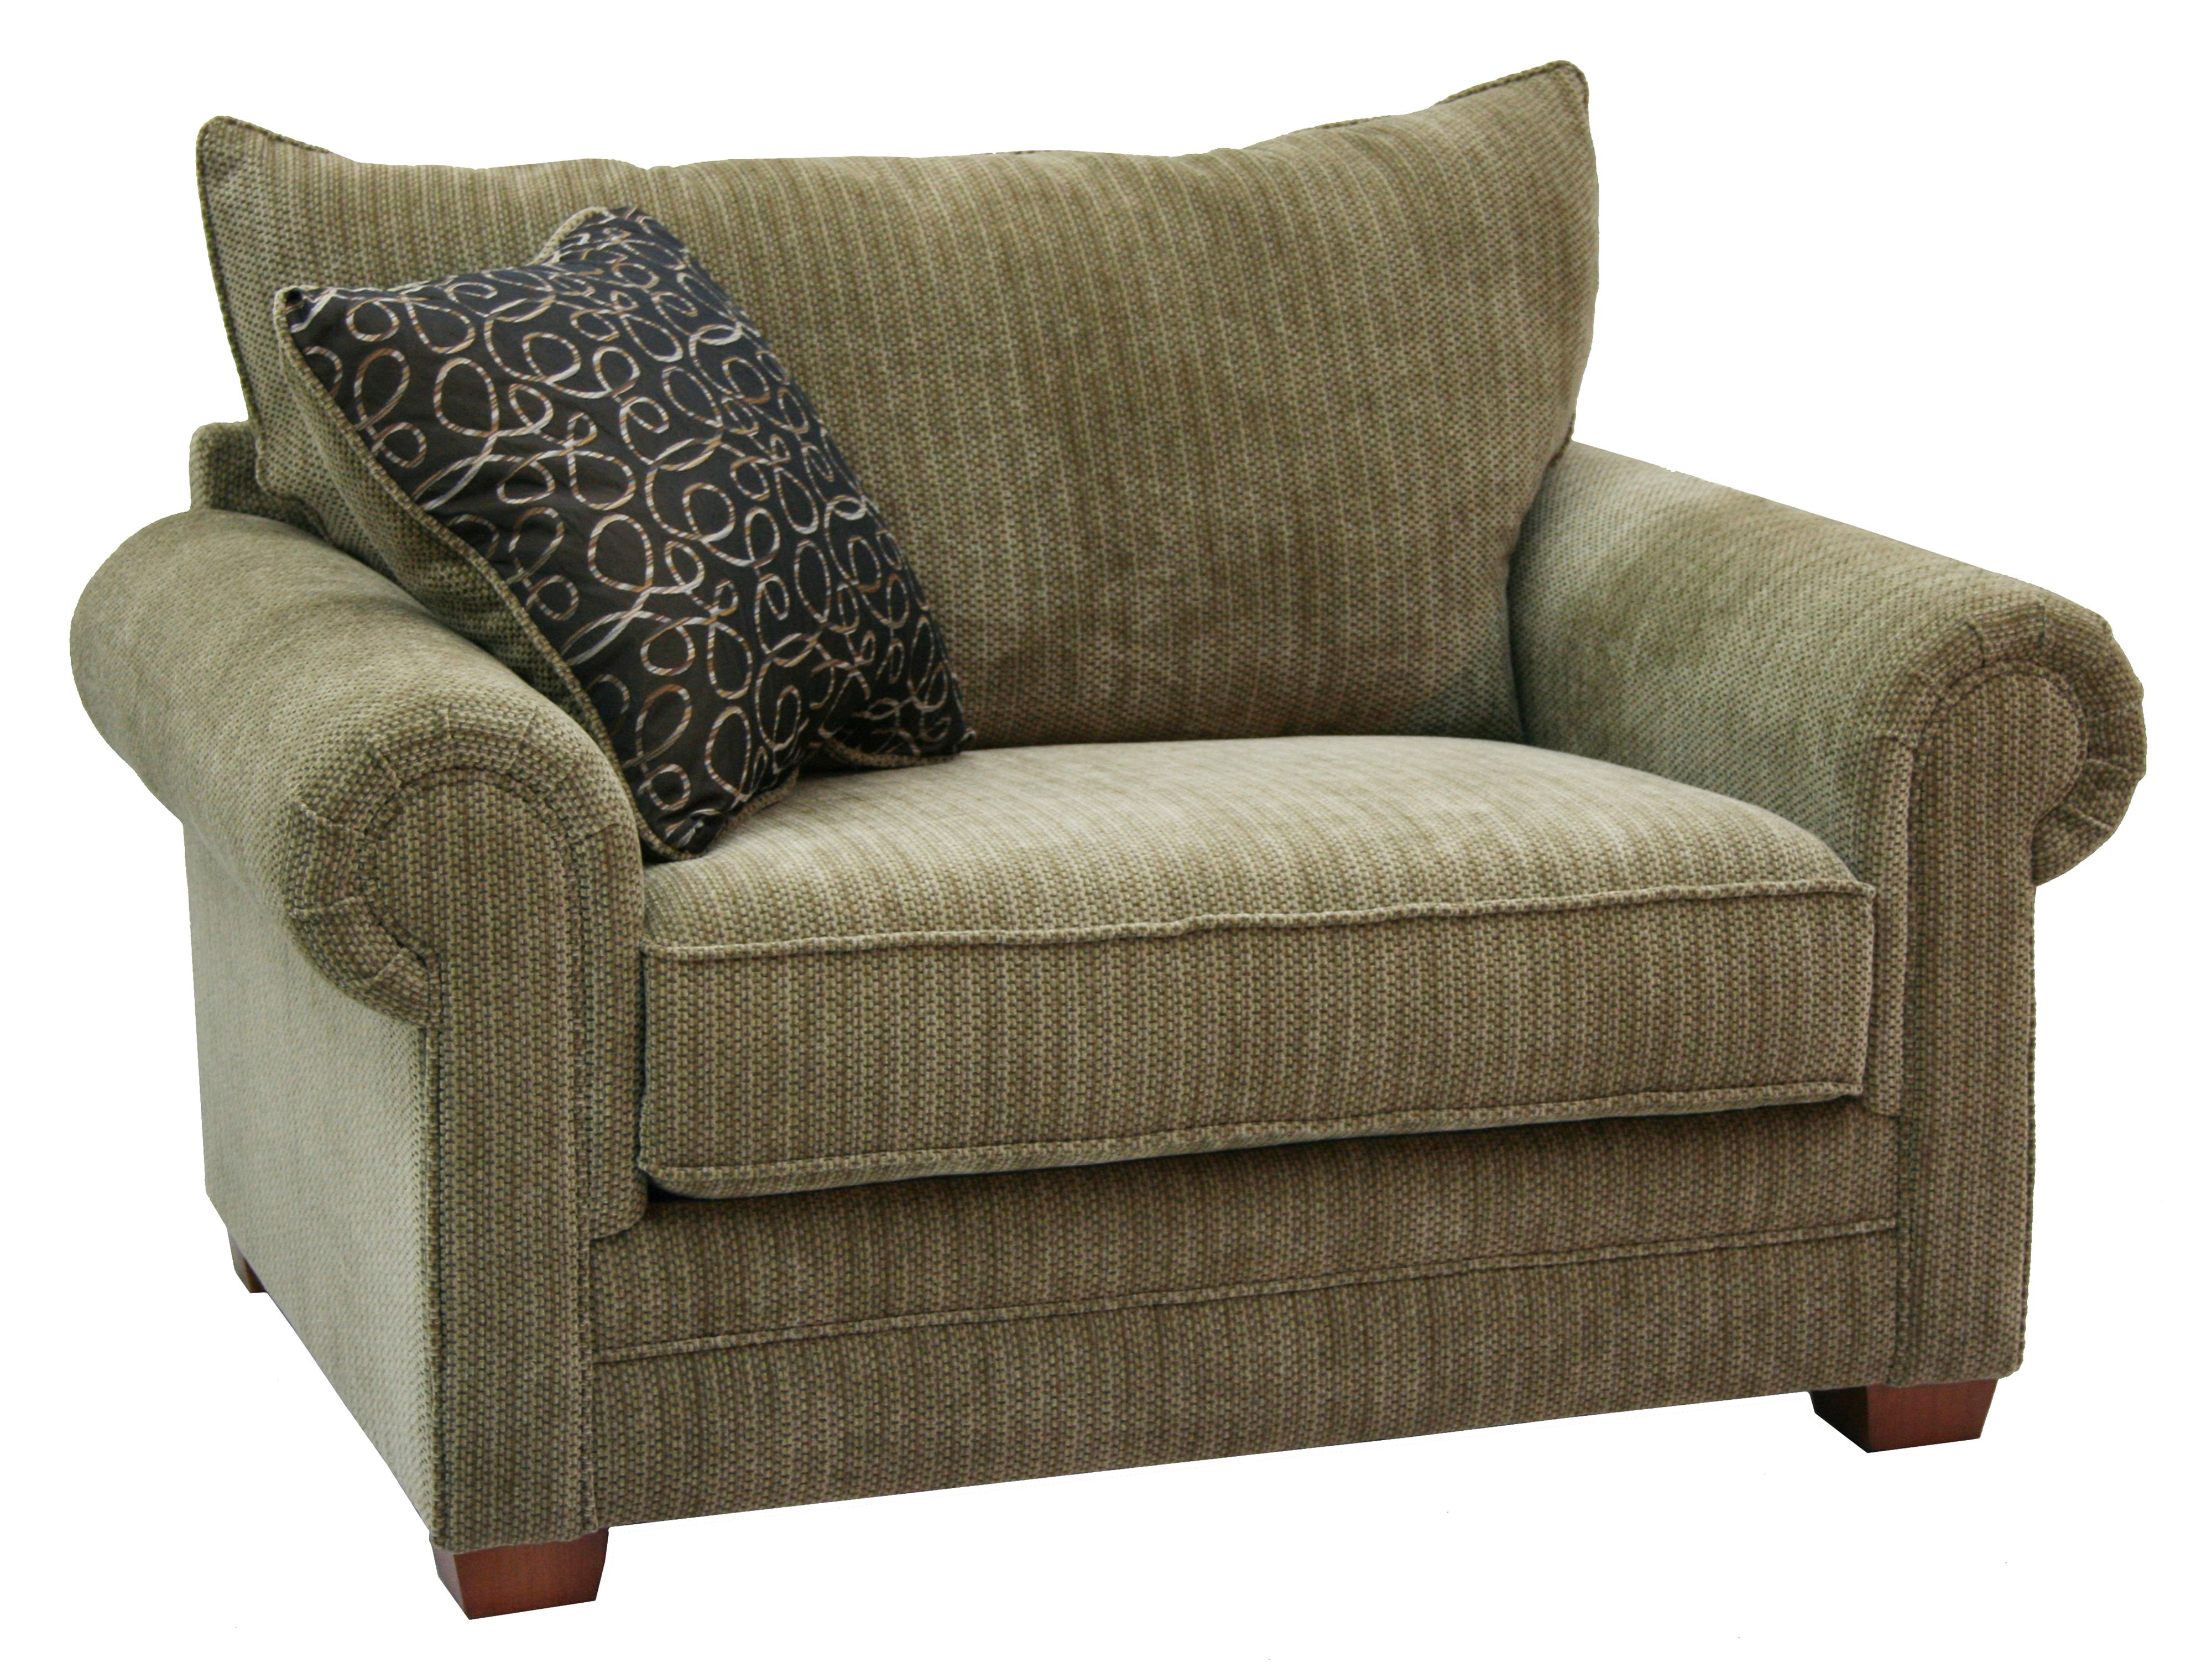 Jackson Furniture Anniston Oversized Rolled Arm Chair Lindy s